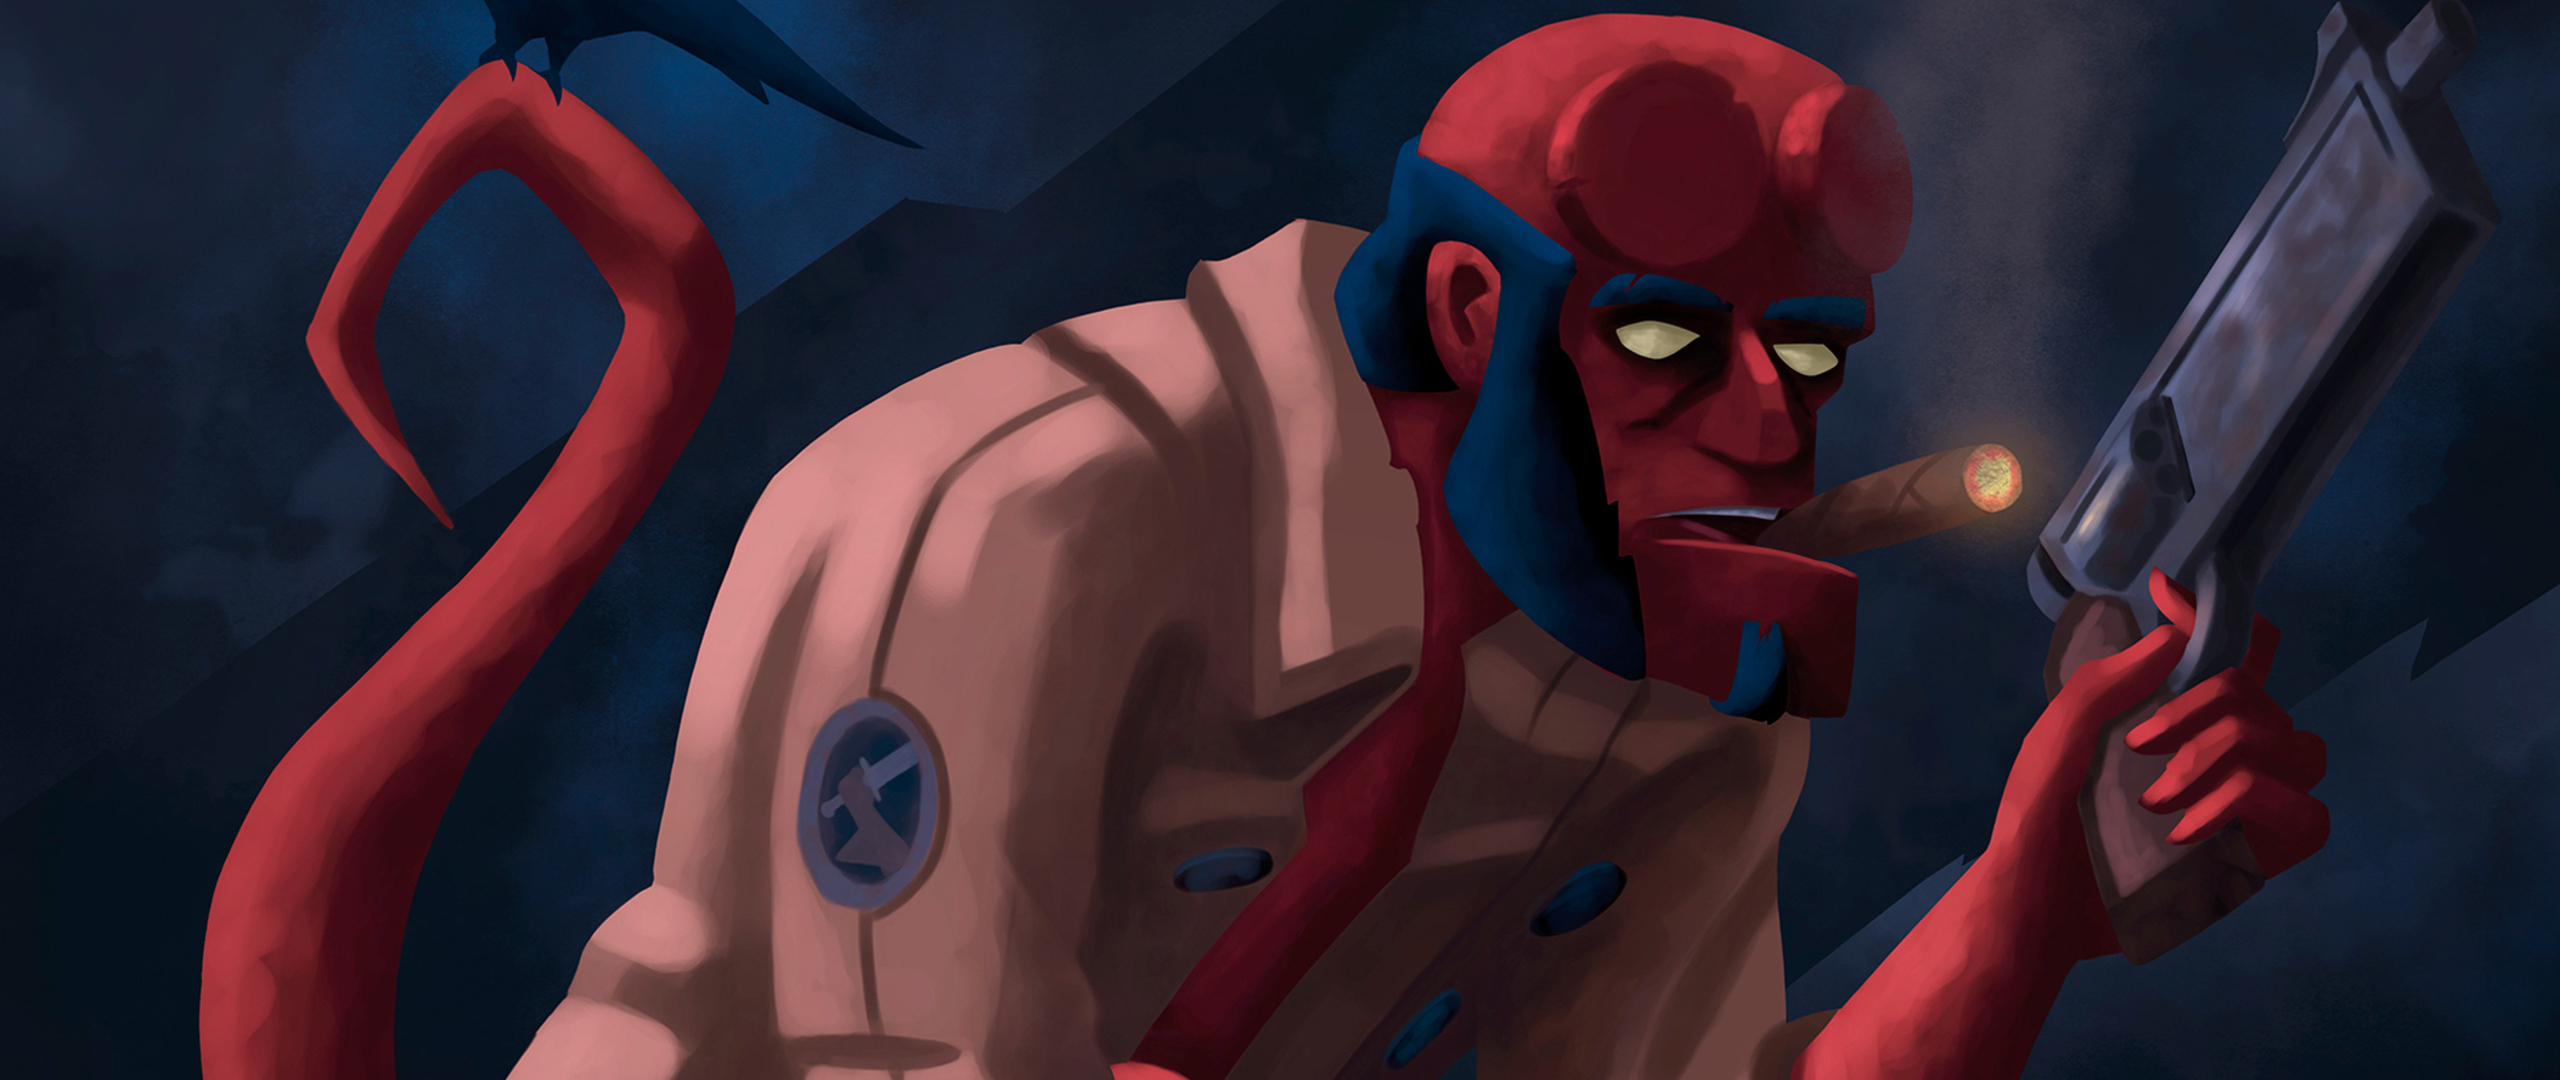 hellboy-digital-artwork-new-nz.jpg